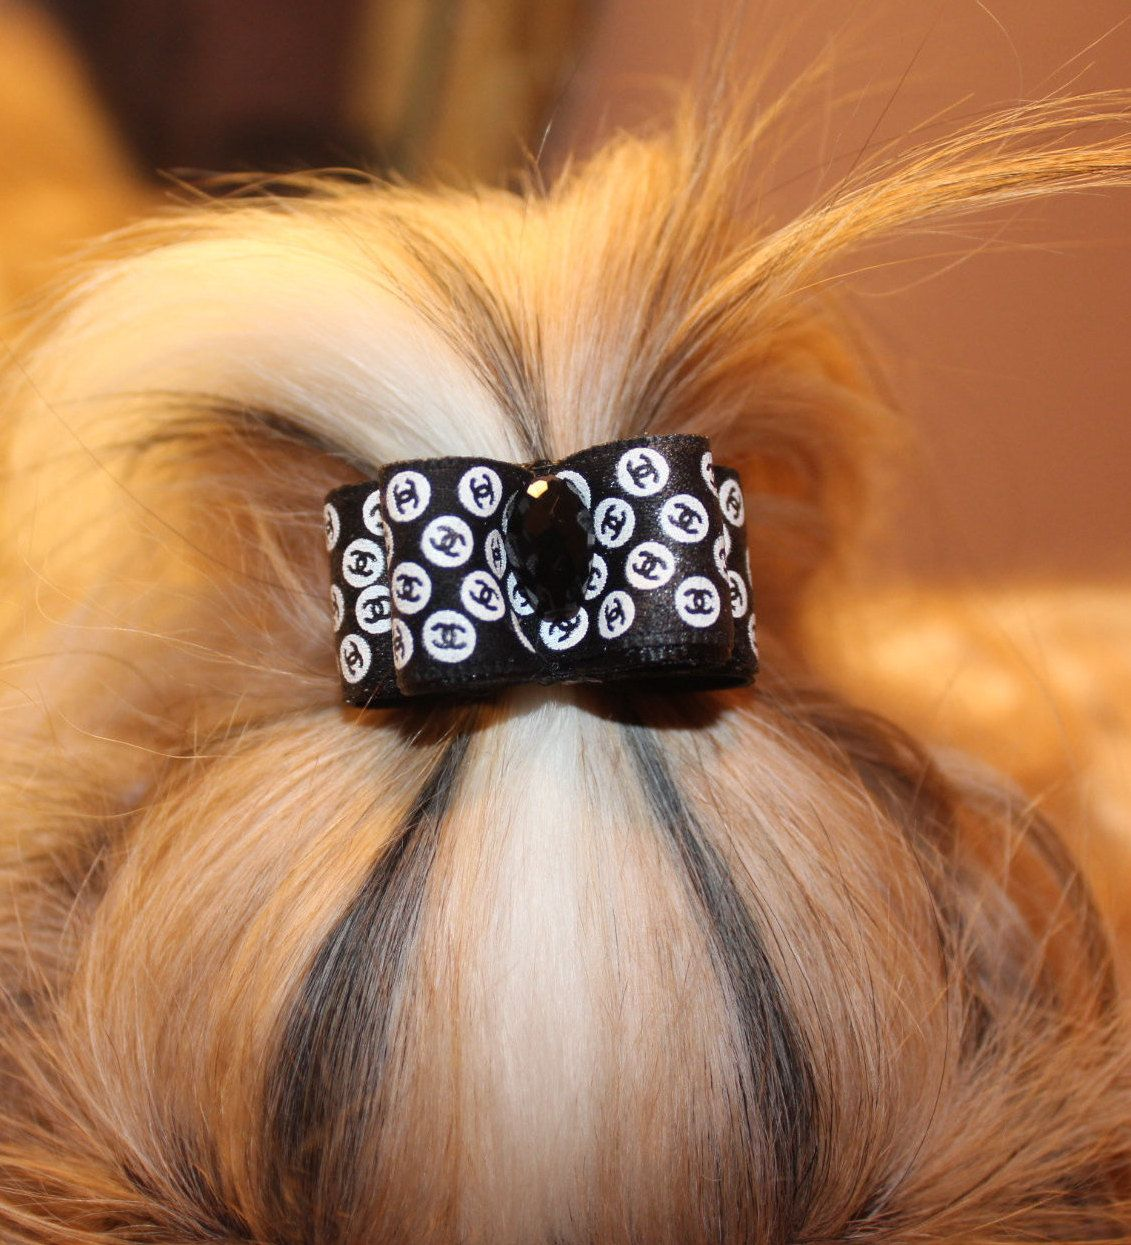 ties dog per dog bow show bows for dogs vintage dog bow pet bow 58 maltese show bow White grooming bow maltese show bow yorkie bow